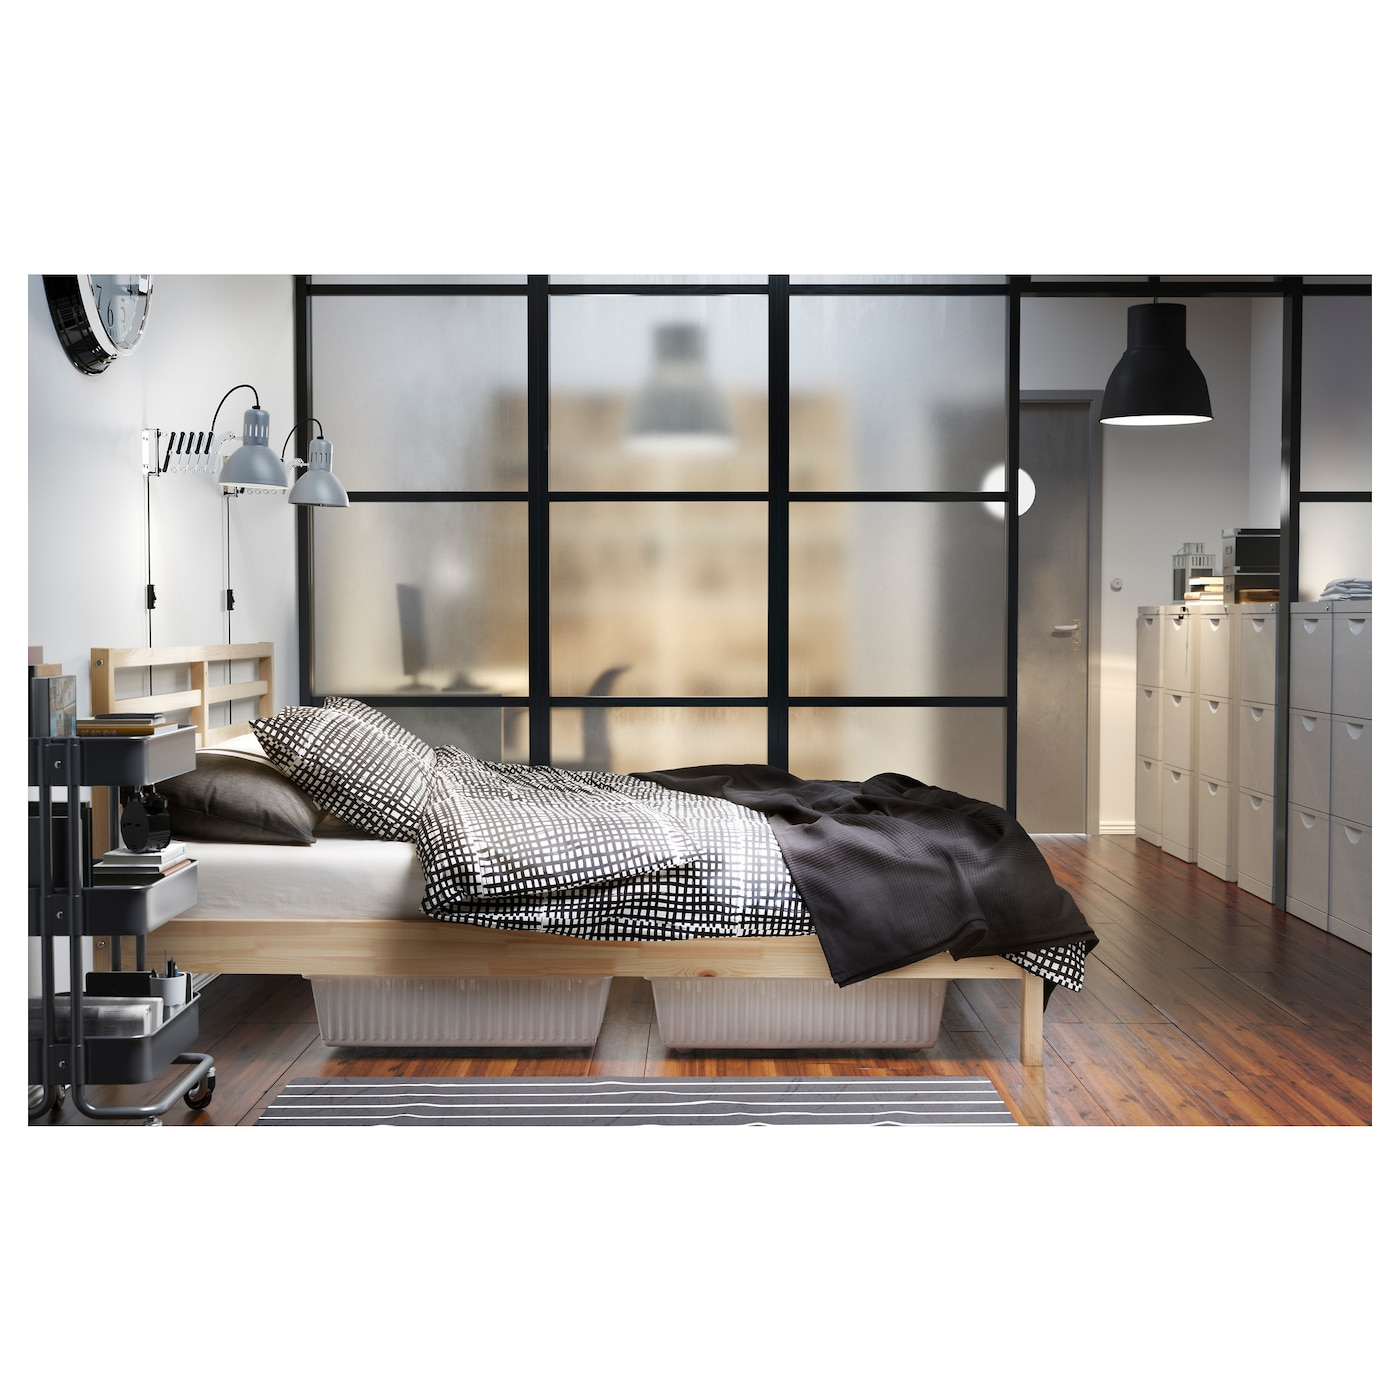 tarva cadre de lit pin 140 x 200 cm ikea. Black Bedroom Furniture Sets. Home Design Ideas